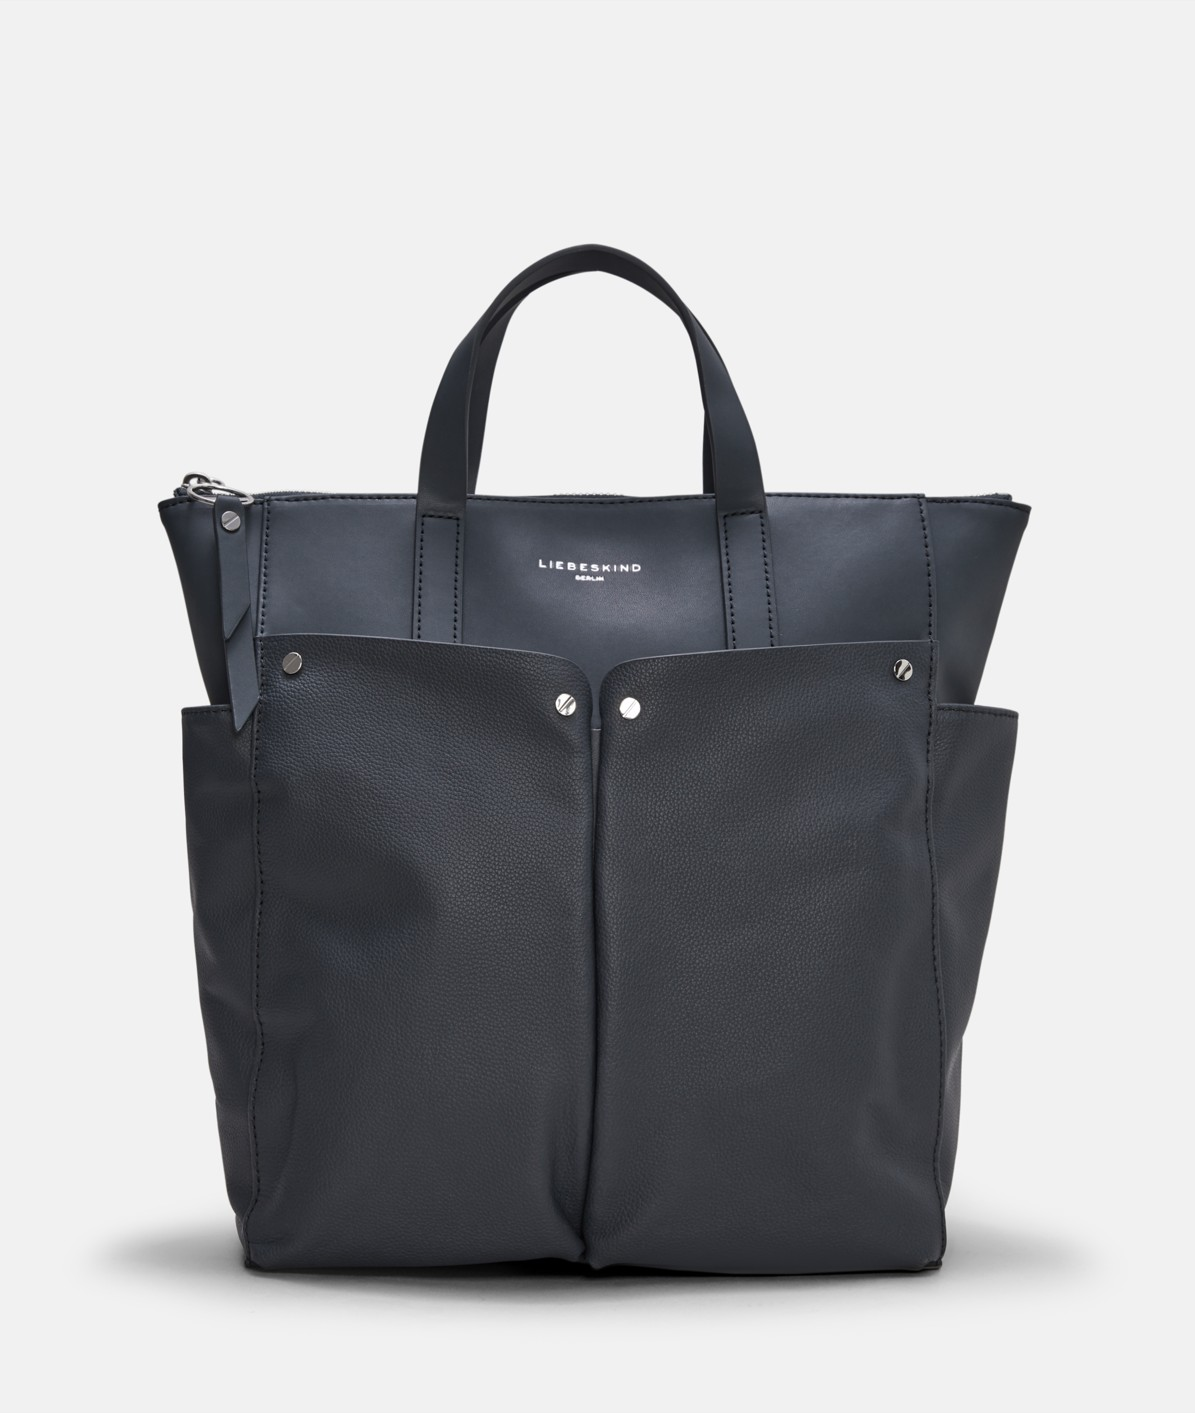 Rucksack with patch pockets on the outside, can be converted into a handbag from liebeskind